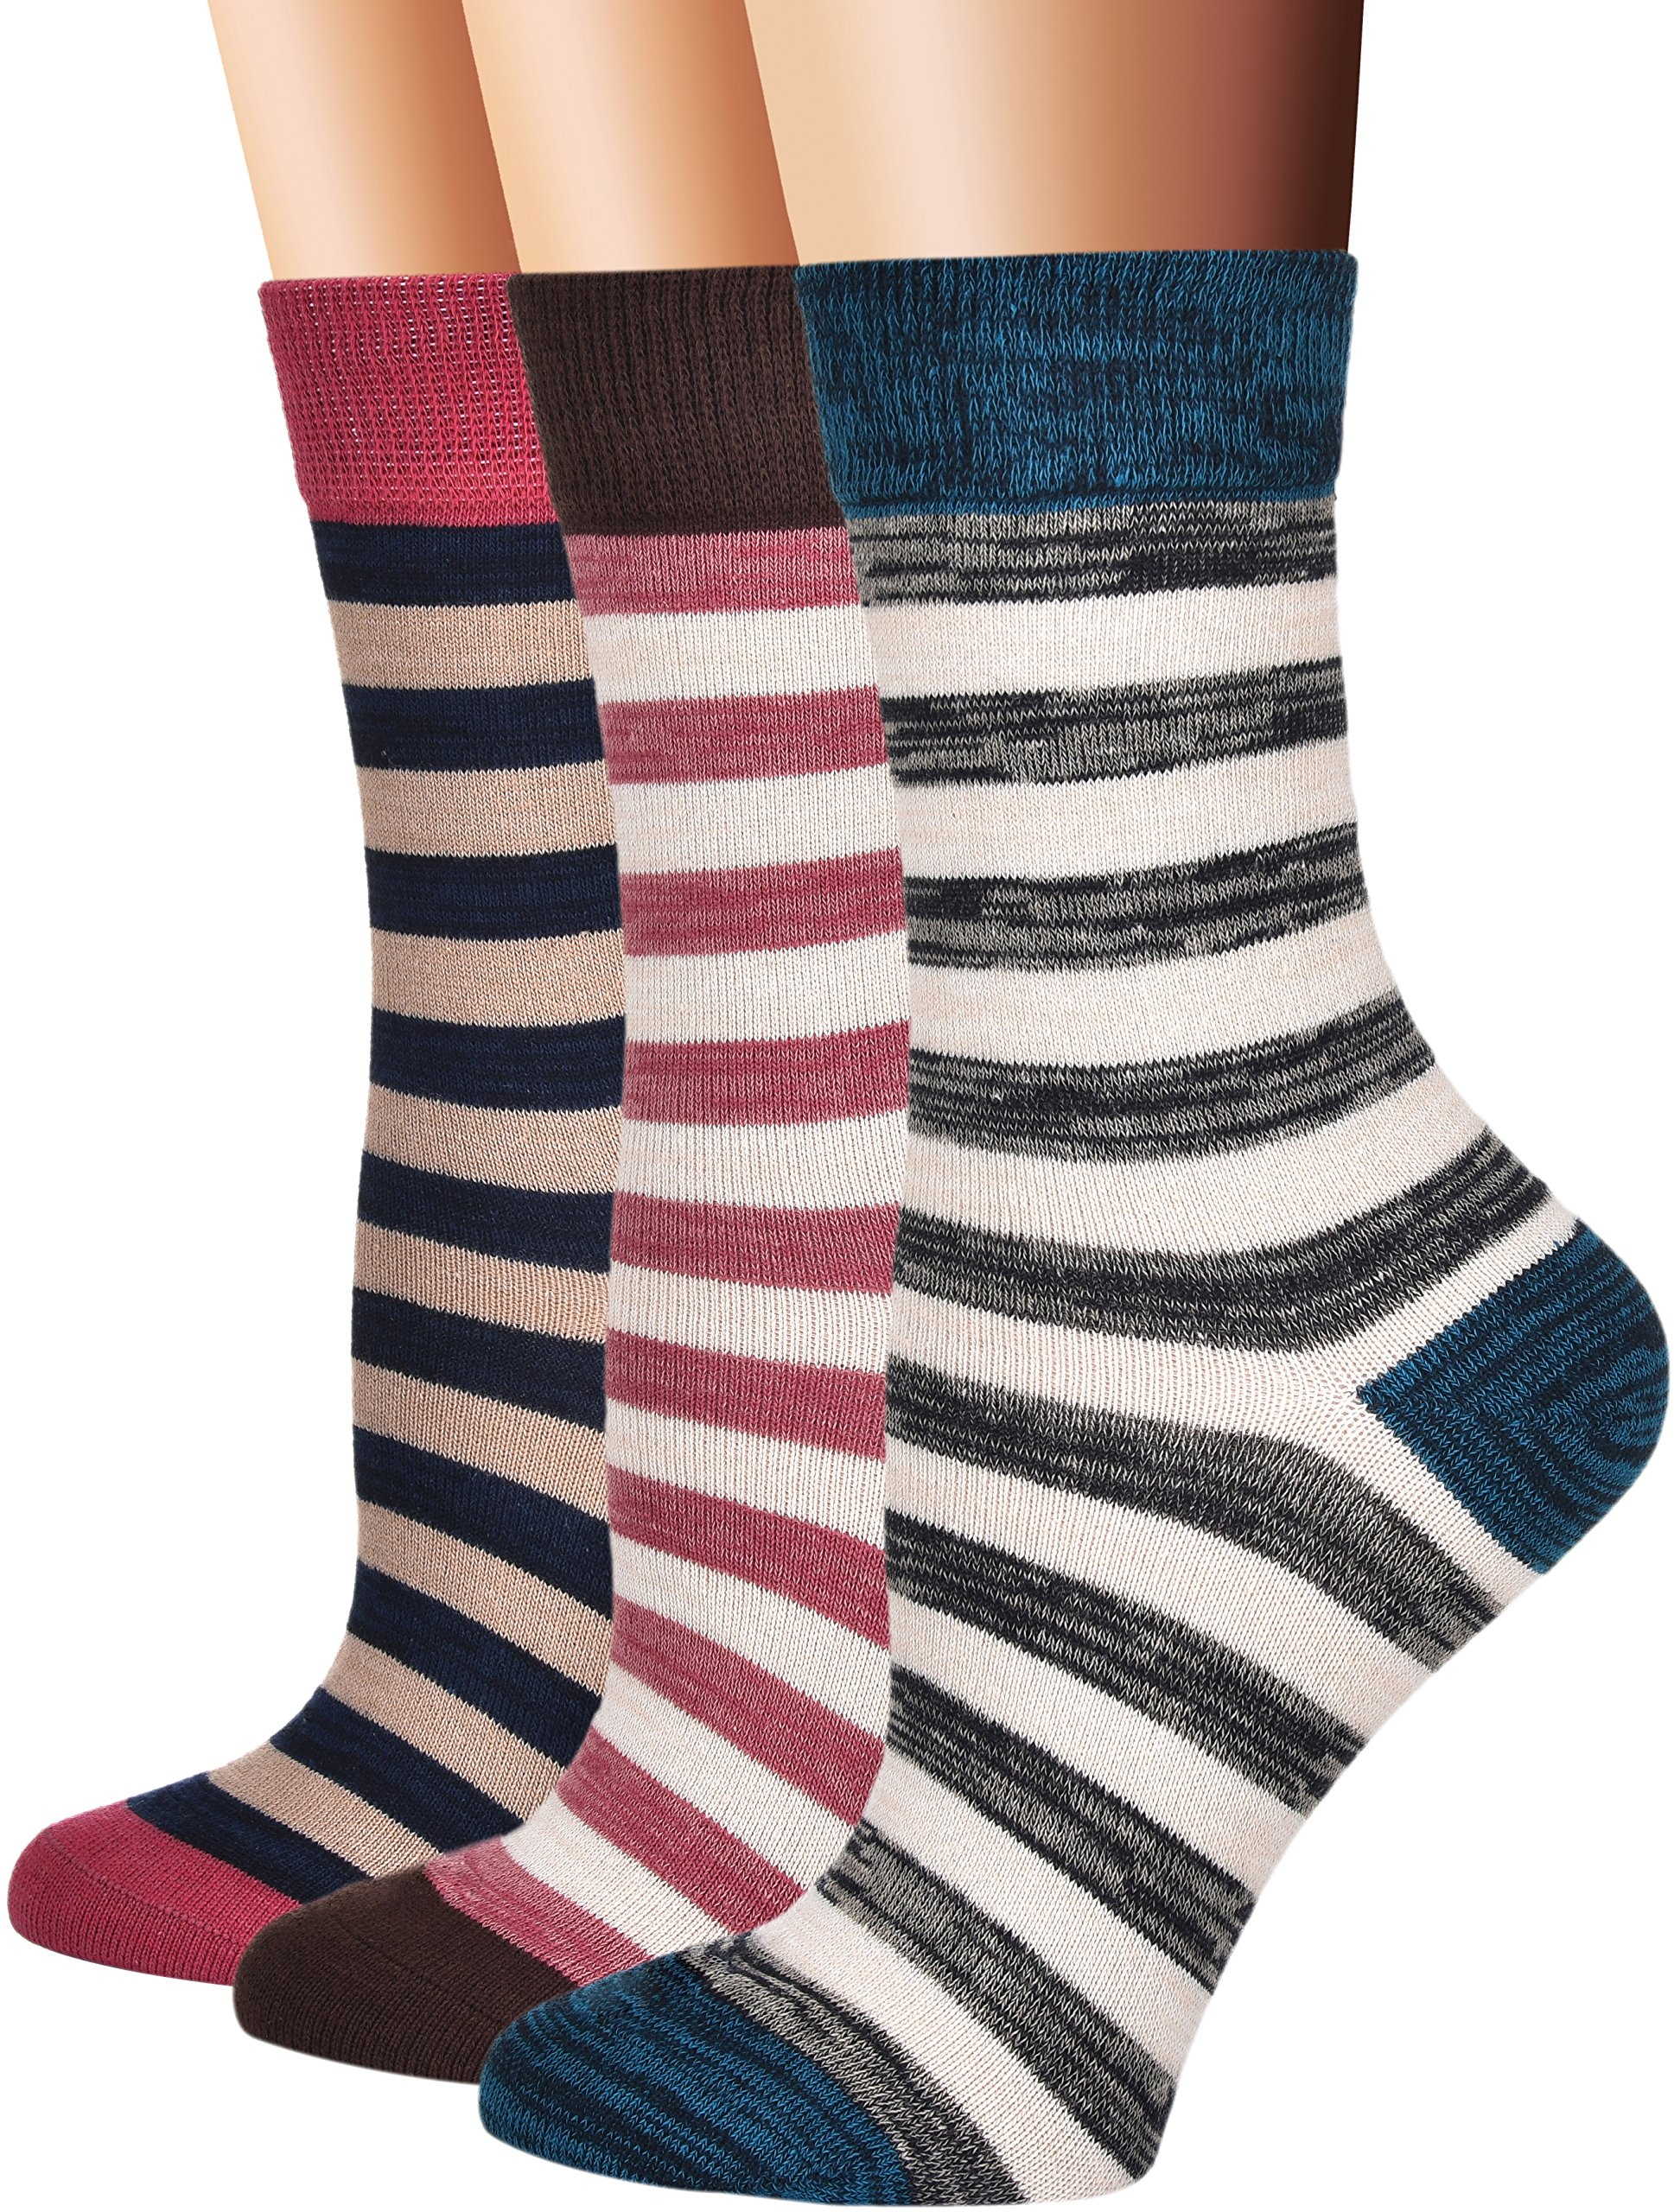 Flora&Fred Women's Vintage Cotton Crew Socks, Size 10-12 / Shoe Size 8-11, Striped, 3 Pairs Pack